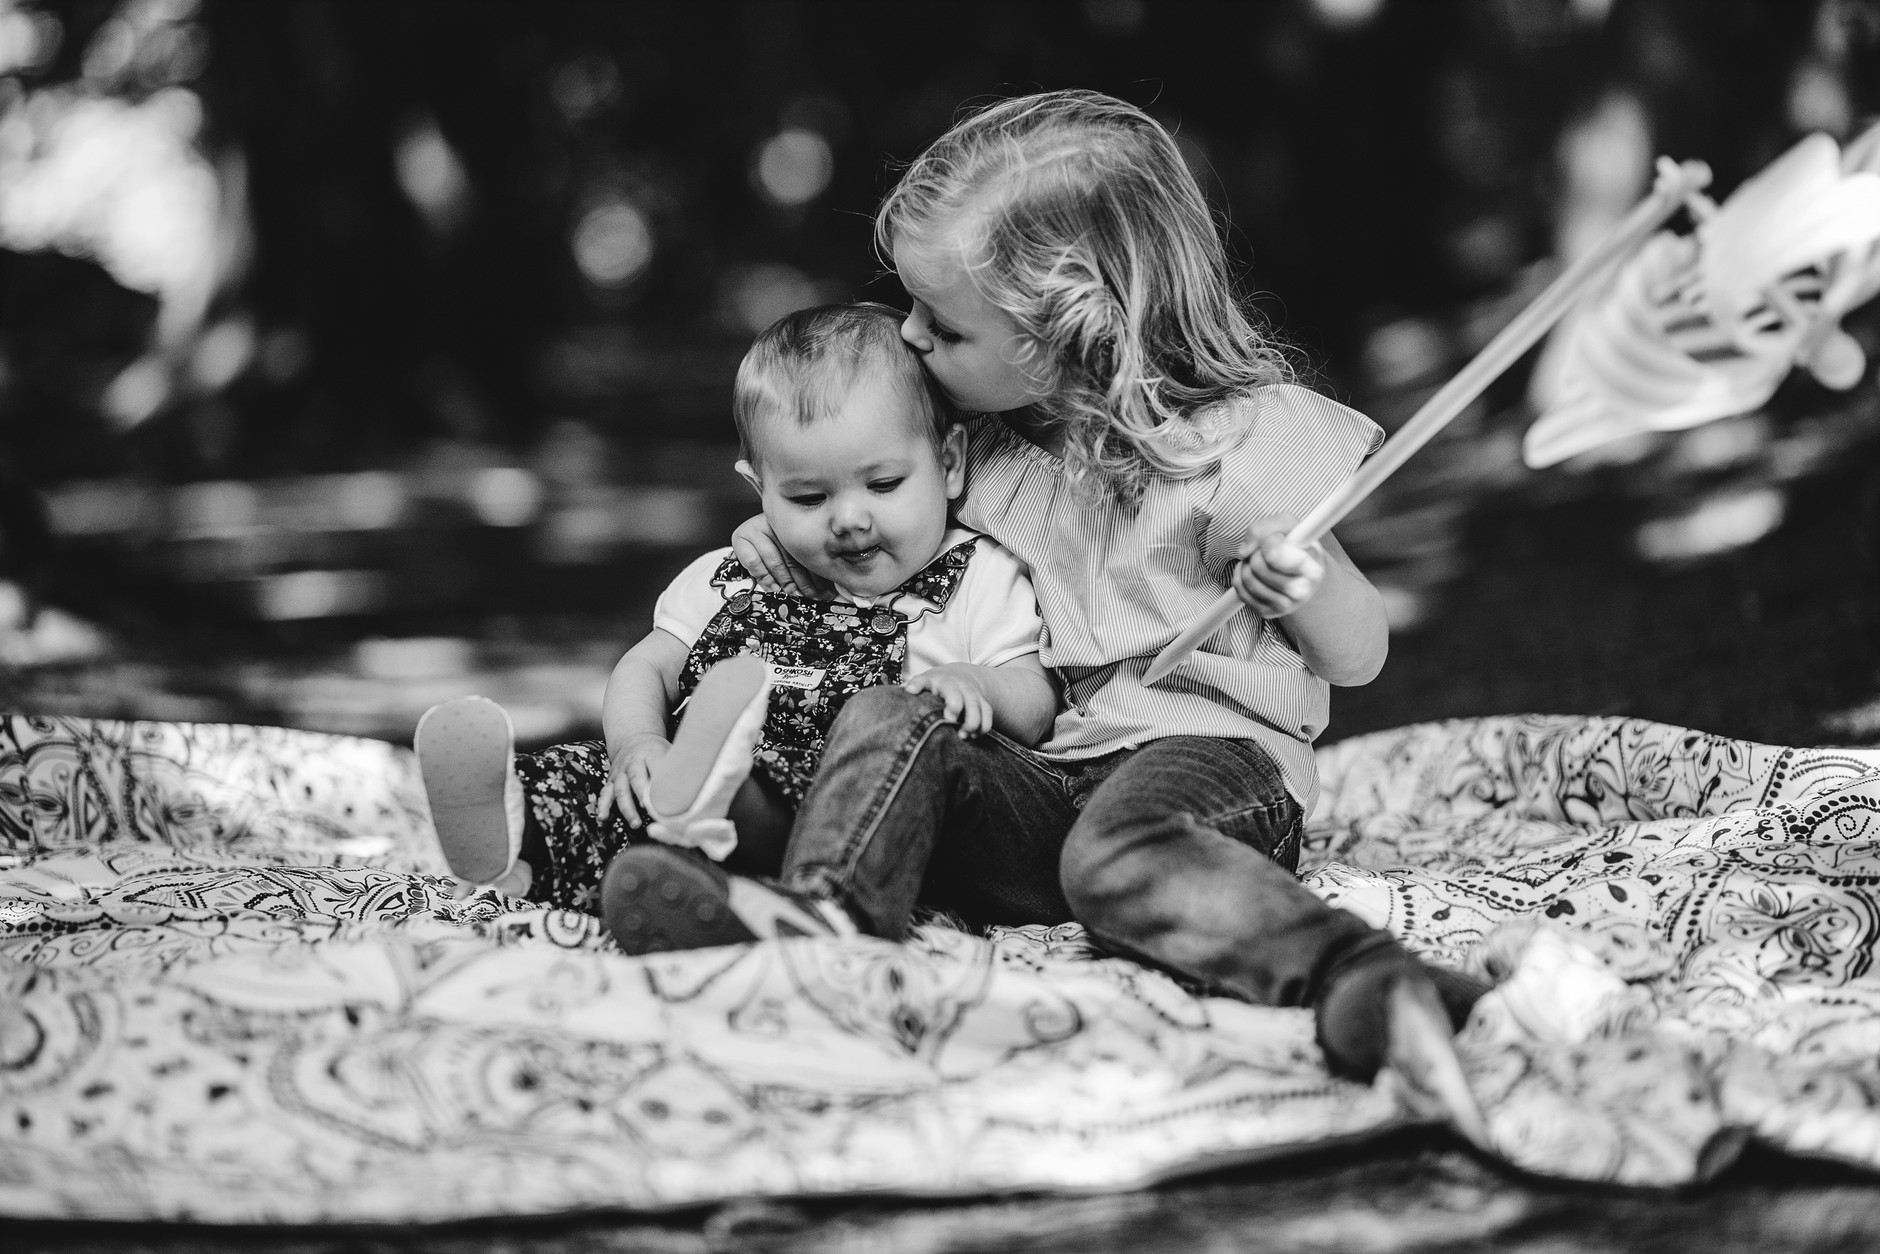 Big sister kissing baby on the head on a blanket in a park